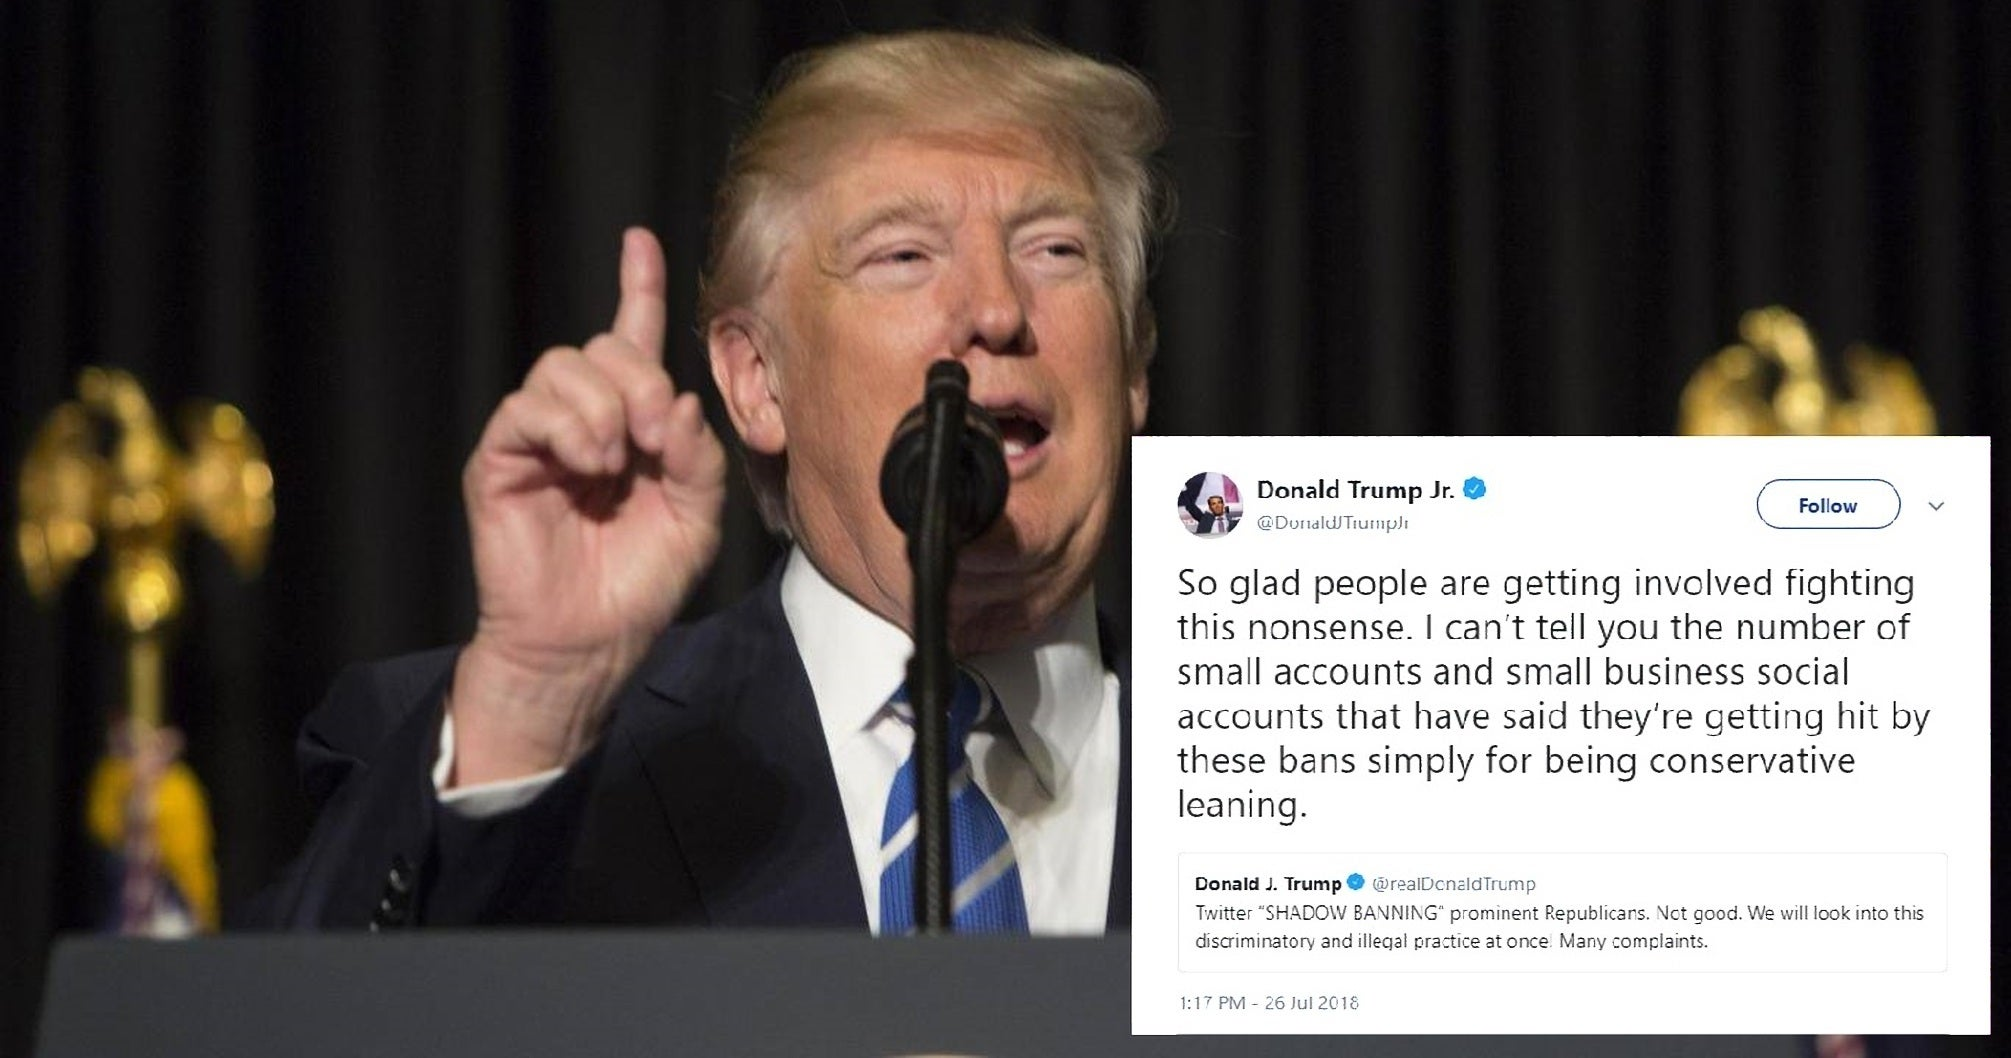 Trump and Donald Jr peddle debunked Twitter 'shadow ban' conspiracy